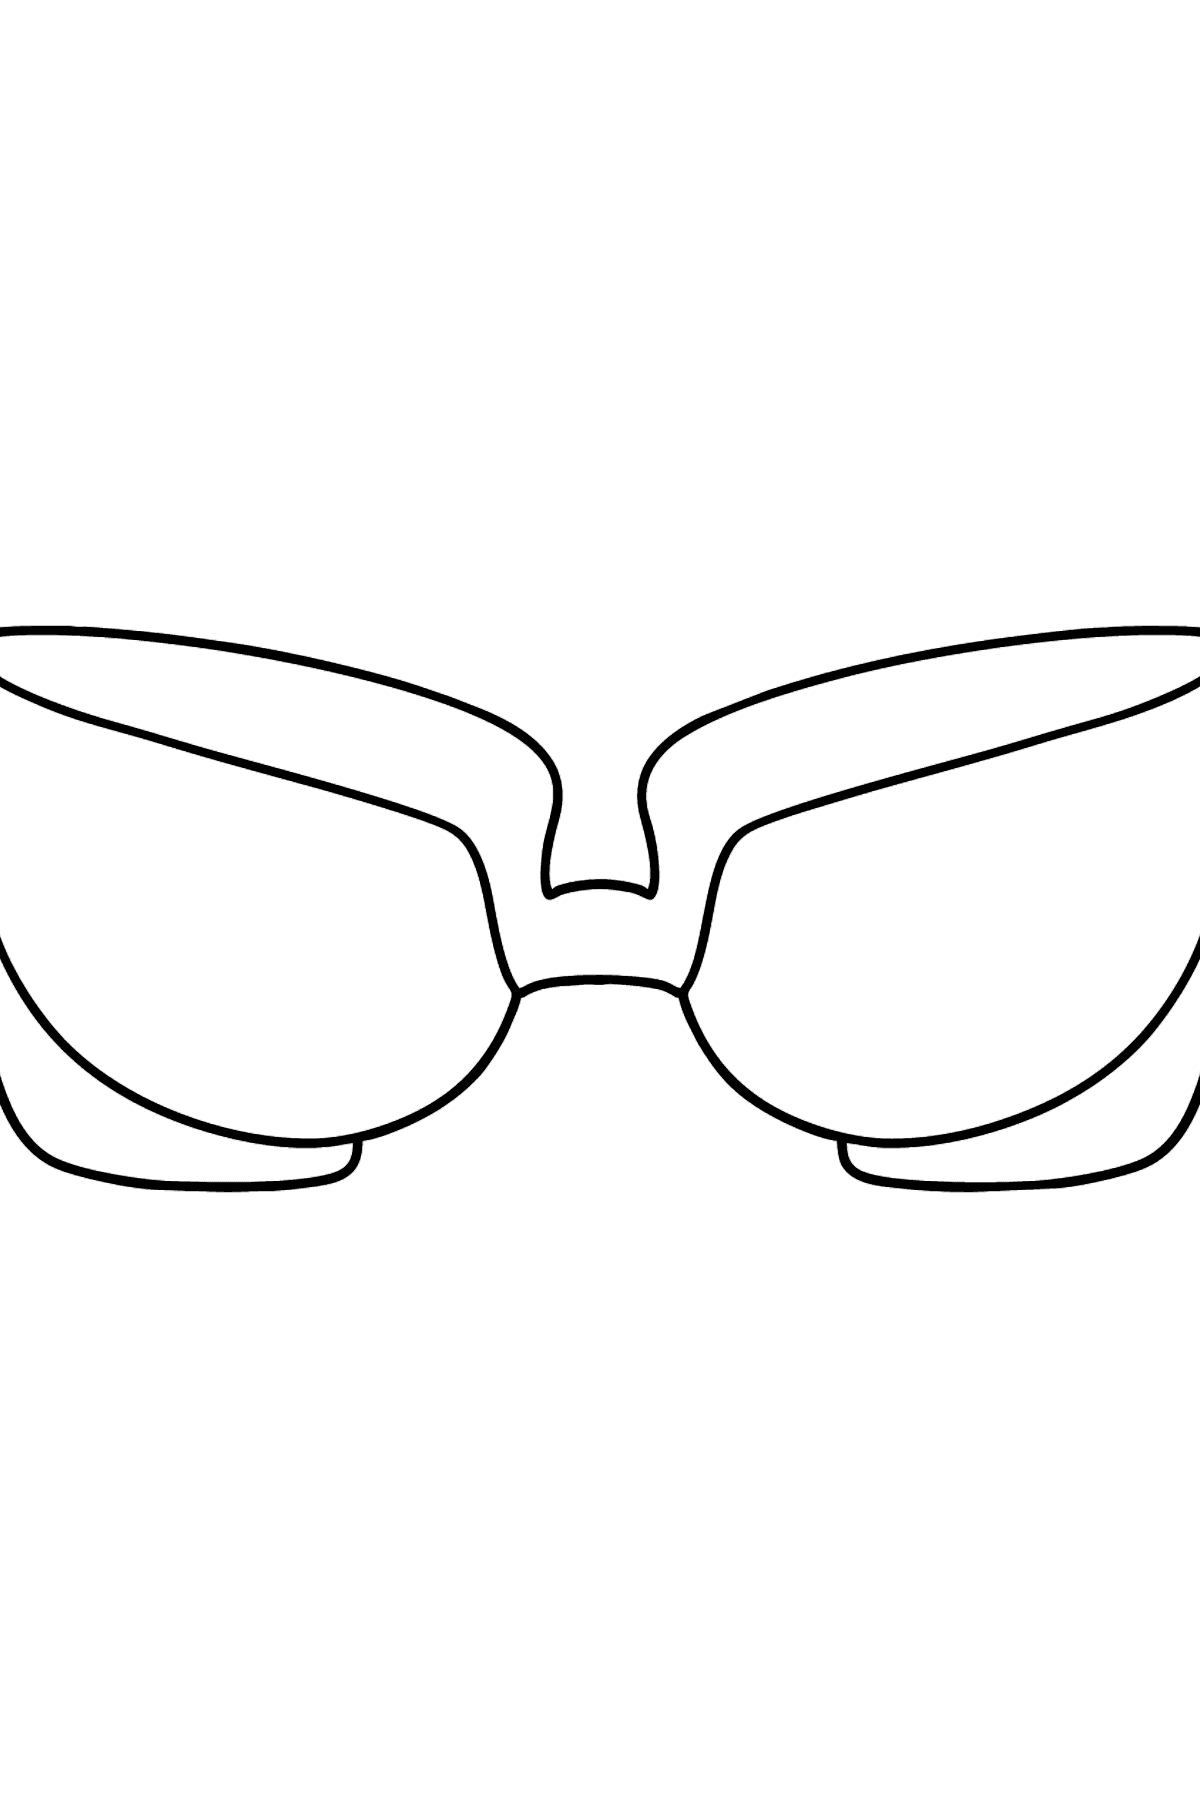 Glasses coloring page - Coloring Pages for Kids